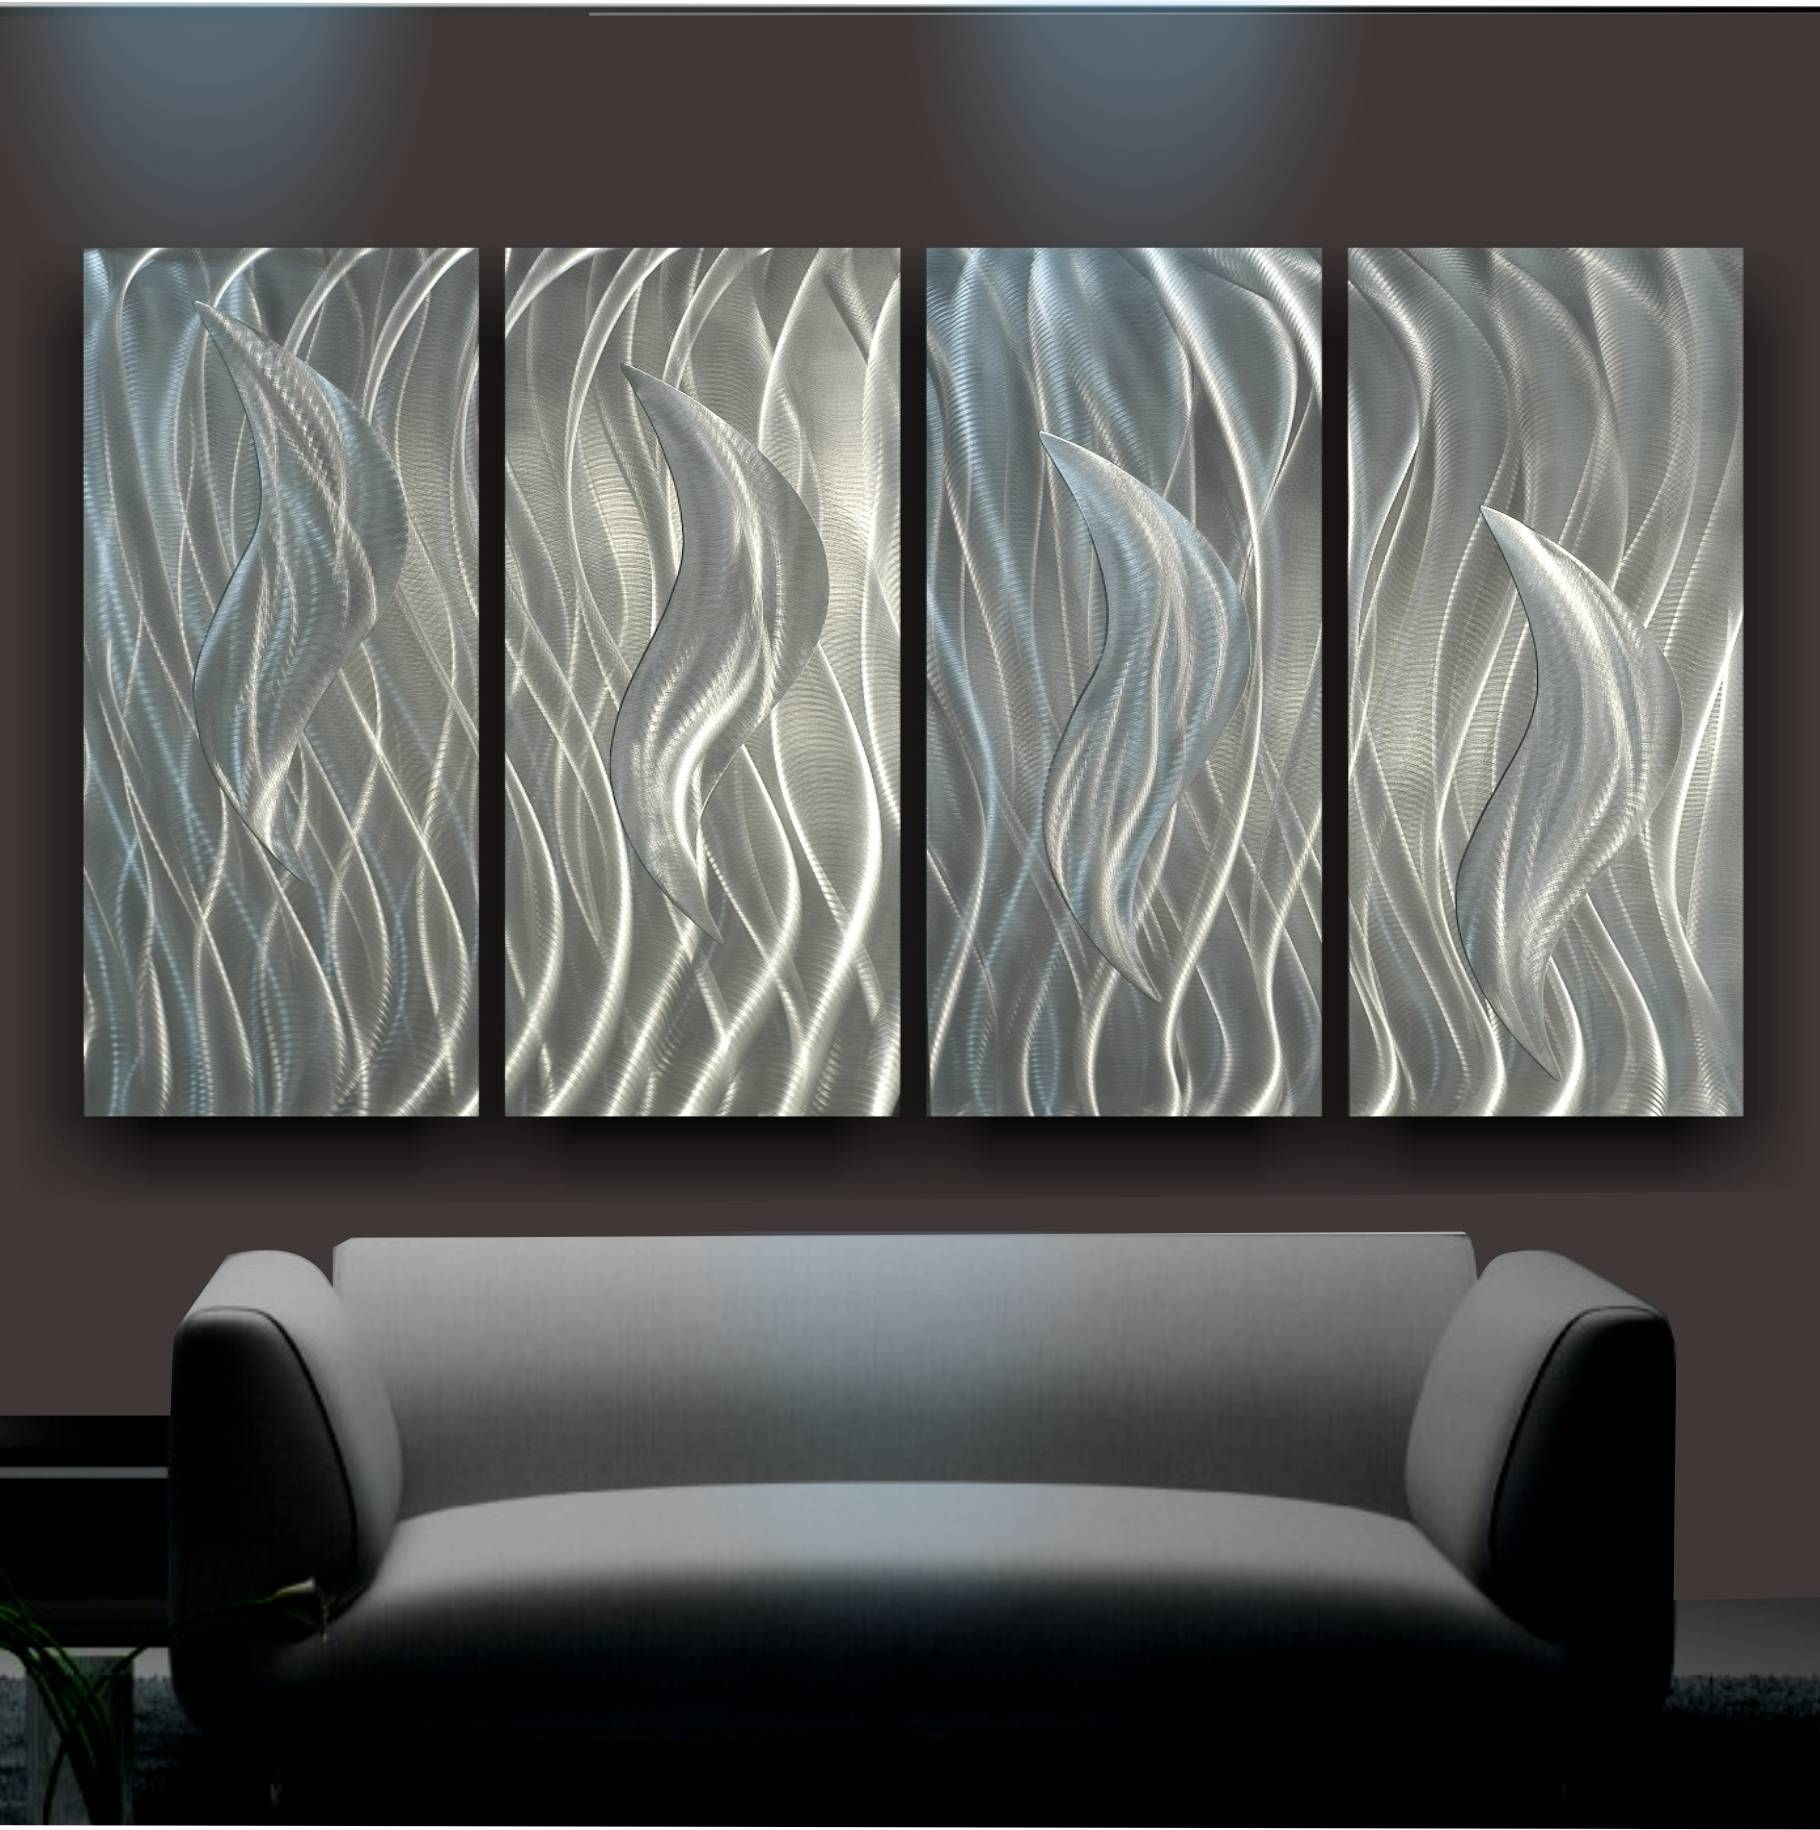 Terrific Trendy Wall Industrial Wall Art Ideas Industrial Metal With Regard To Newest Industrial Wall Art (View 10 of 15)